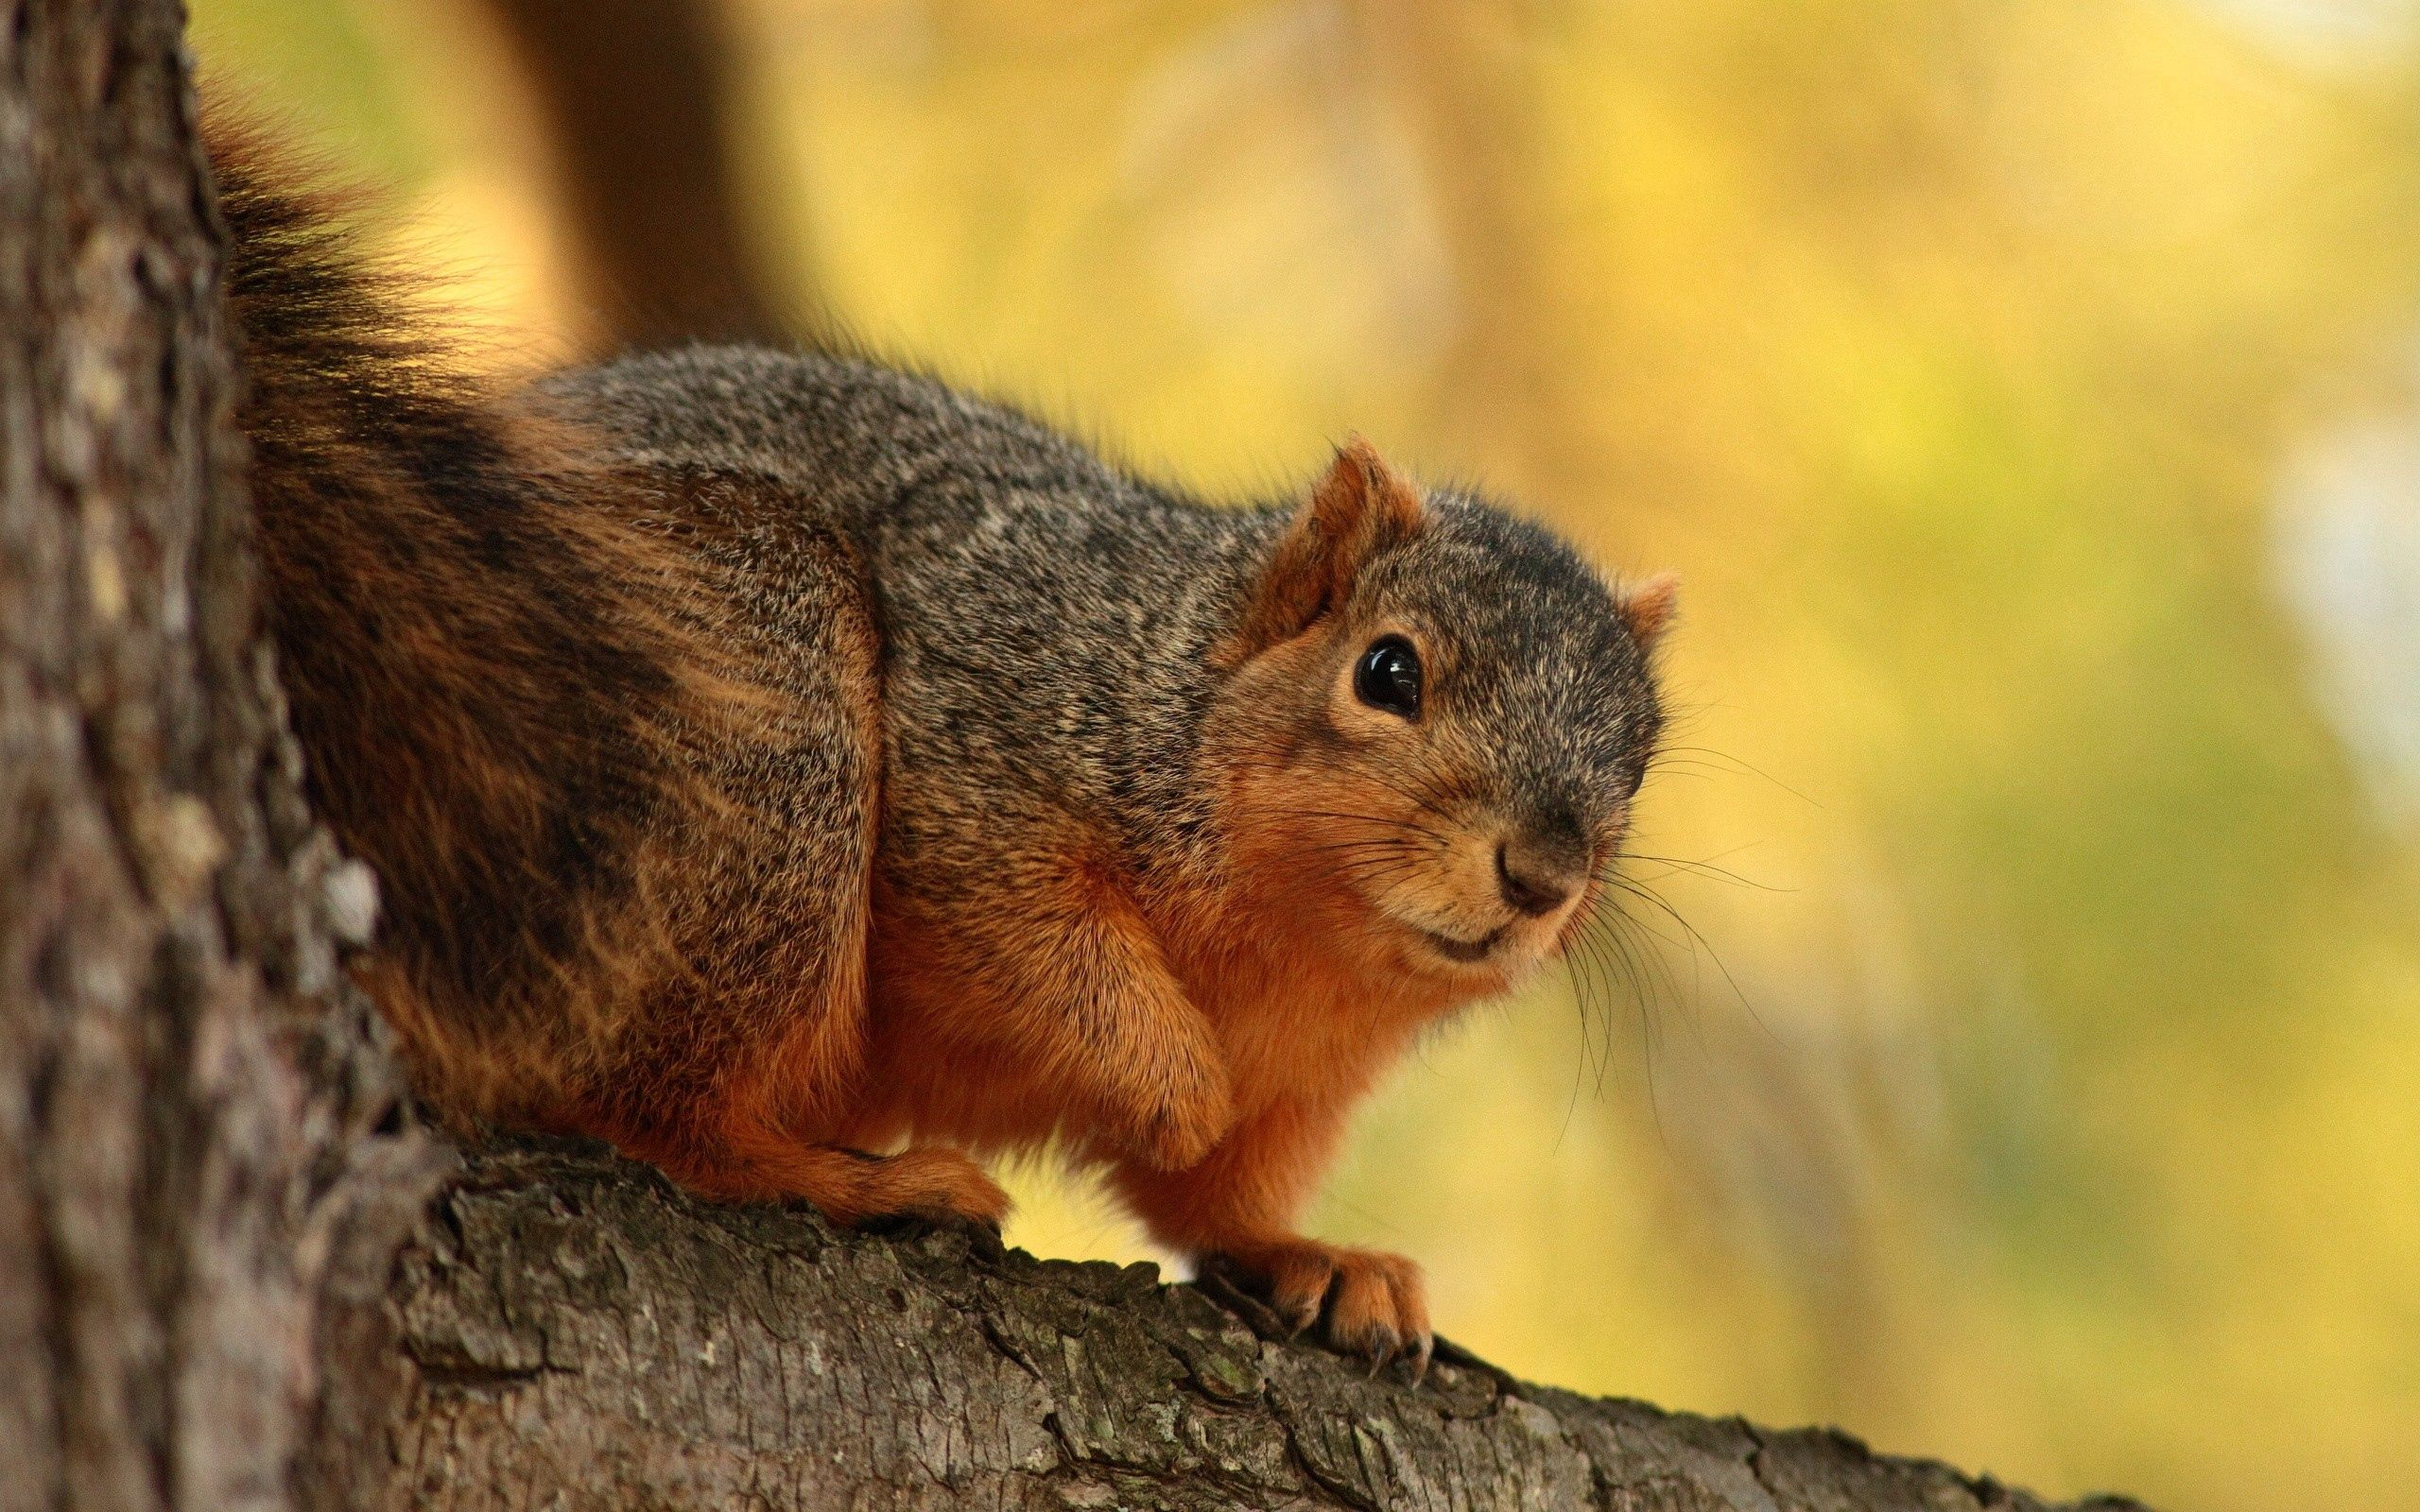 109777 download wallpaper Animals, Squirrel, Branch, Bark, Sit, Animal screensavers and pictures for free